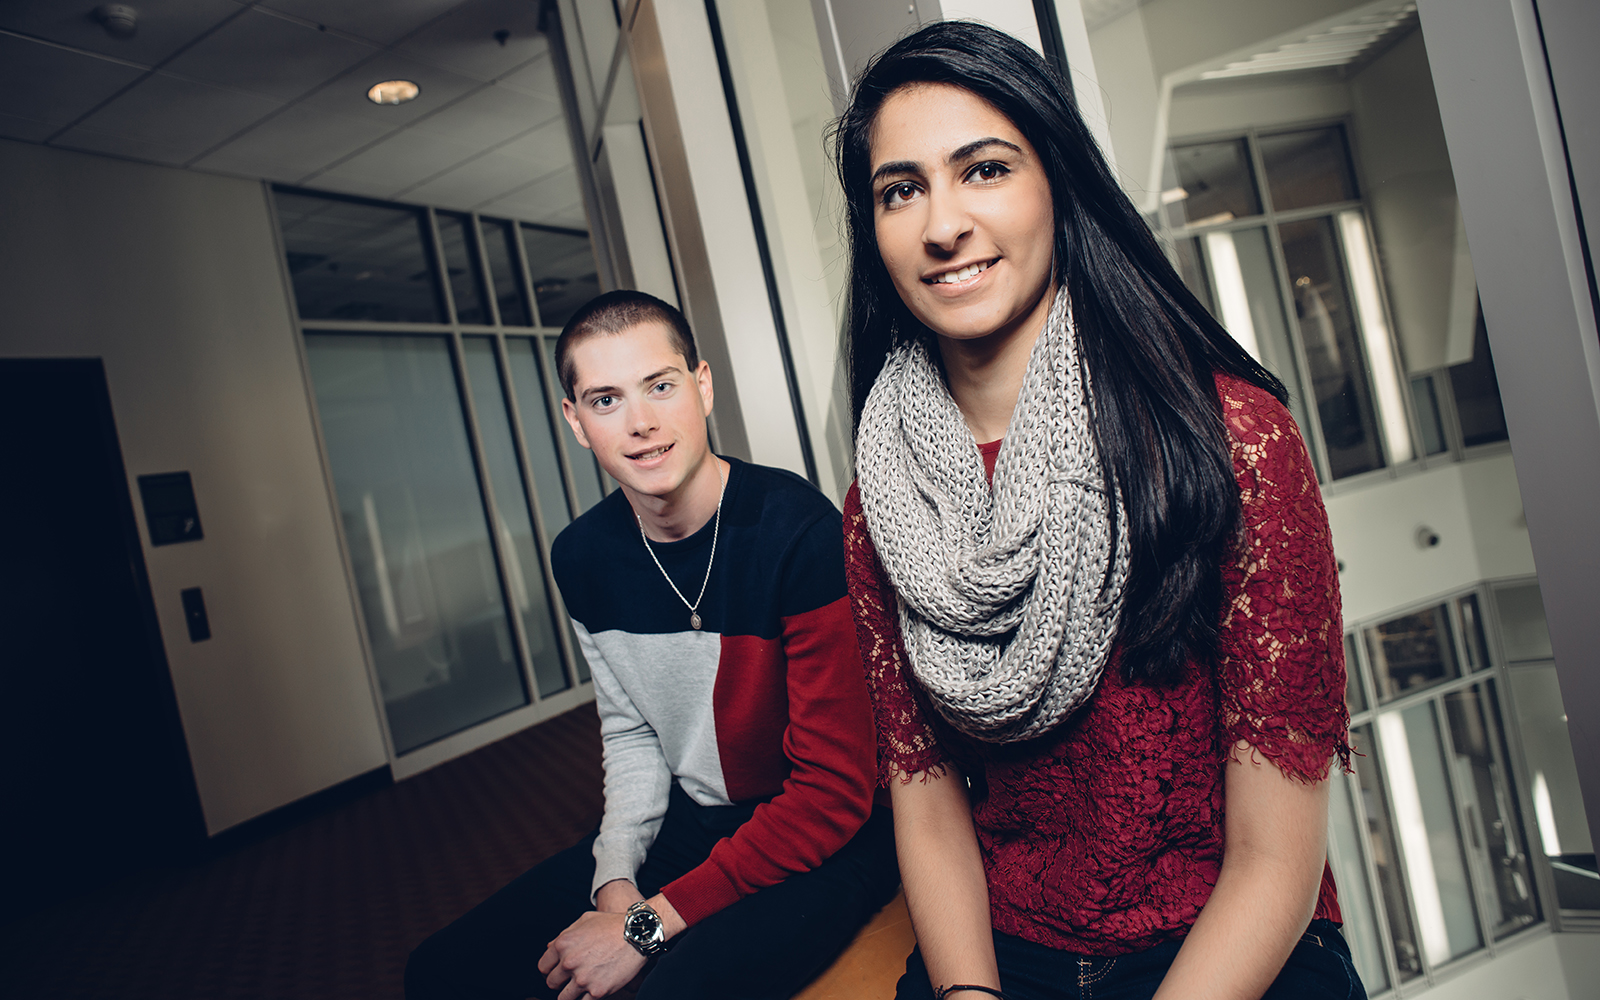 Jeffrey Noonan, left, and Kavisha Thakkar have been selected as two of UConn's Leadership Legacy scholars, an honor bestowed on the University's most exceptional students, who have demonstrated leadership, personal accomplishment and academic excellence. (Nathan Oldham/UConn School of Business)